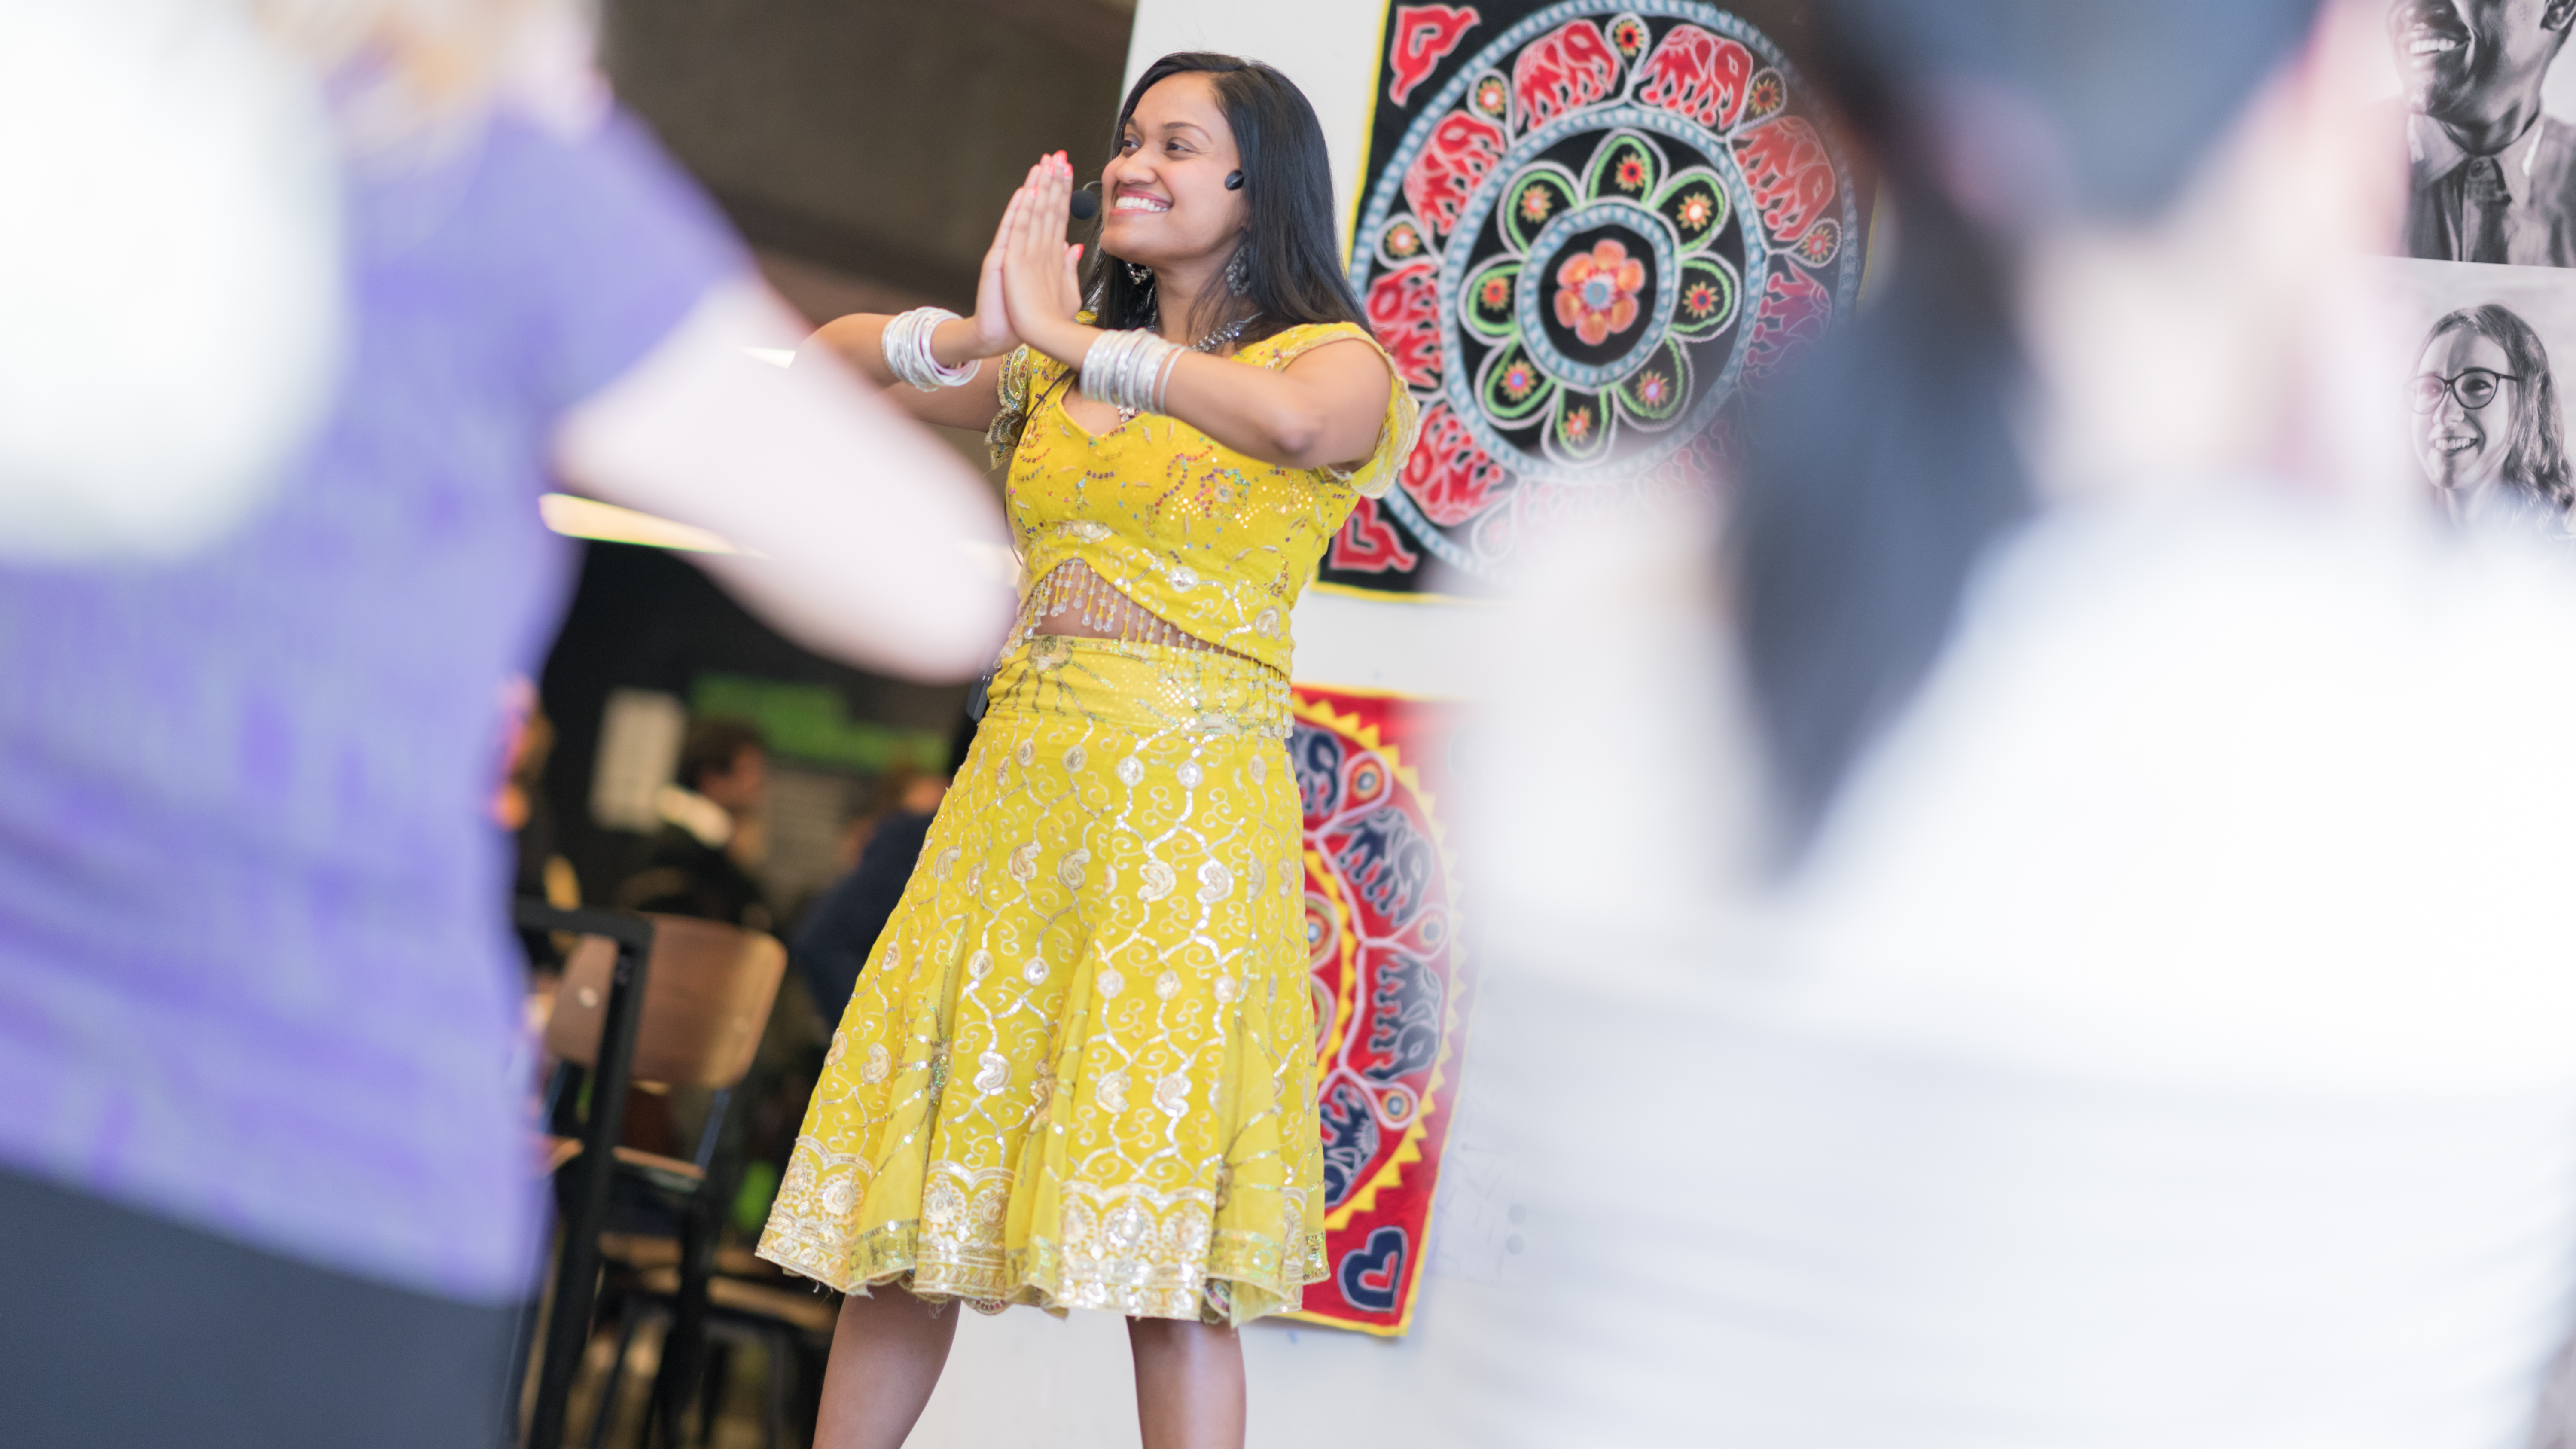 Bollywood Dance Workshop Event - August 18, 2017